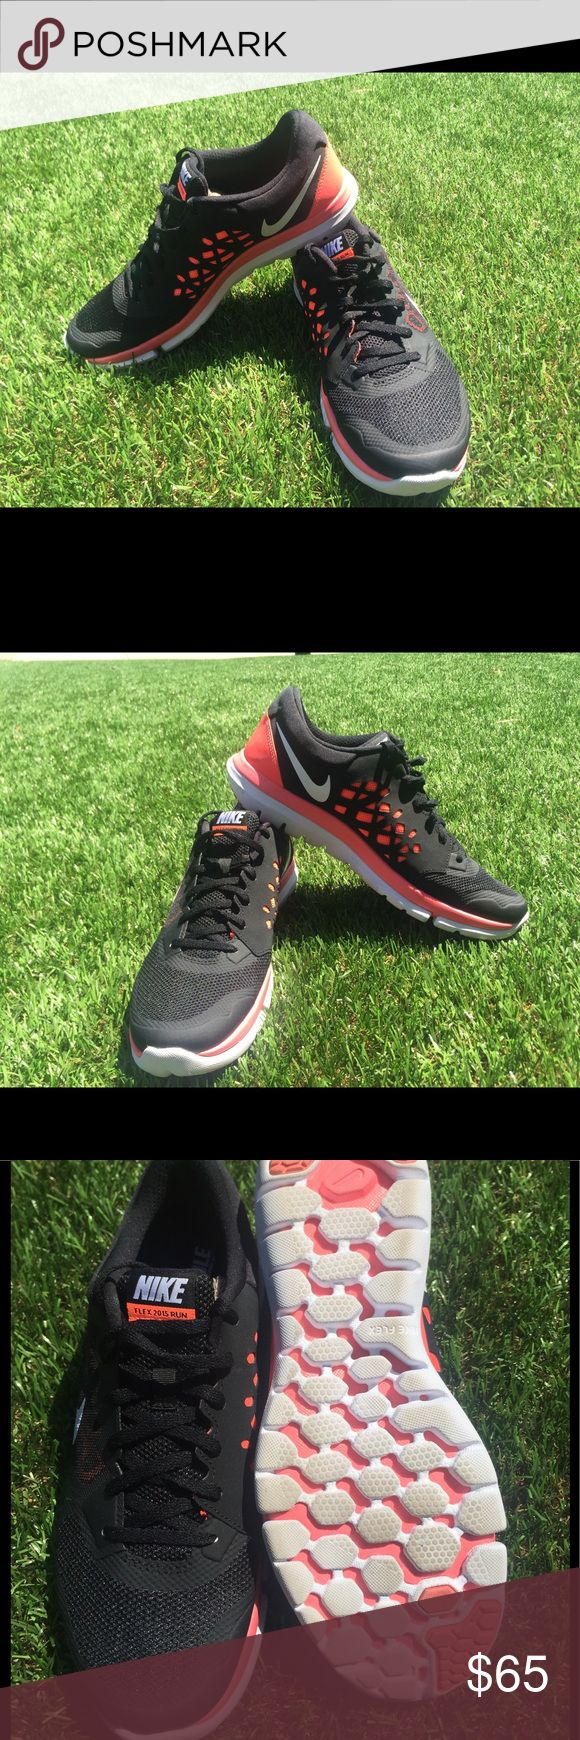 Brand New 2015 Black Nike Fitsole Running Shoes Brand New Nike Fitsole Flex Running Shoes. Great for long distance running and popular color | Size 12 Women | Black & Neon Nike Shoes Athletic Shoes